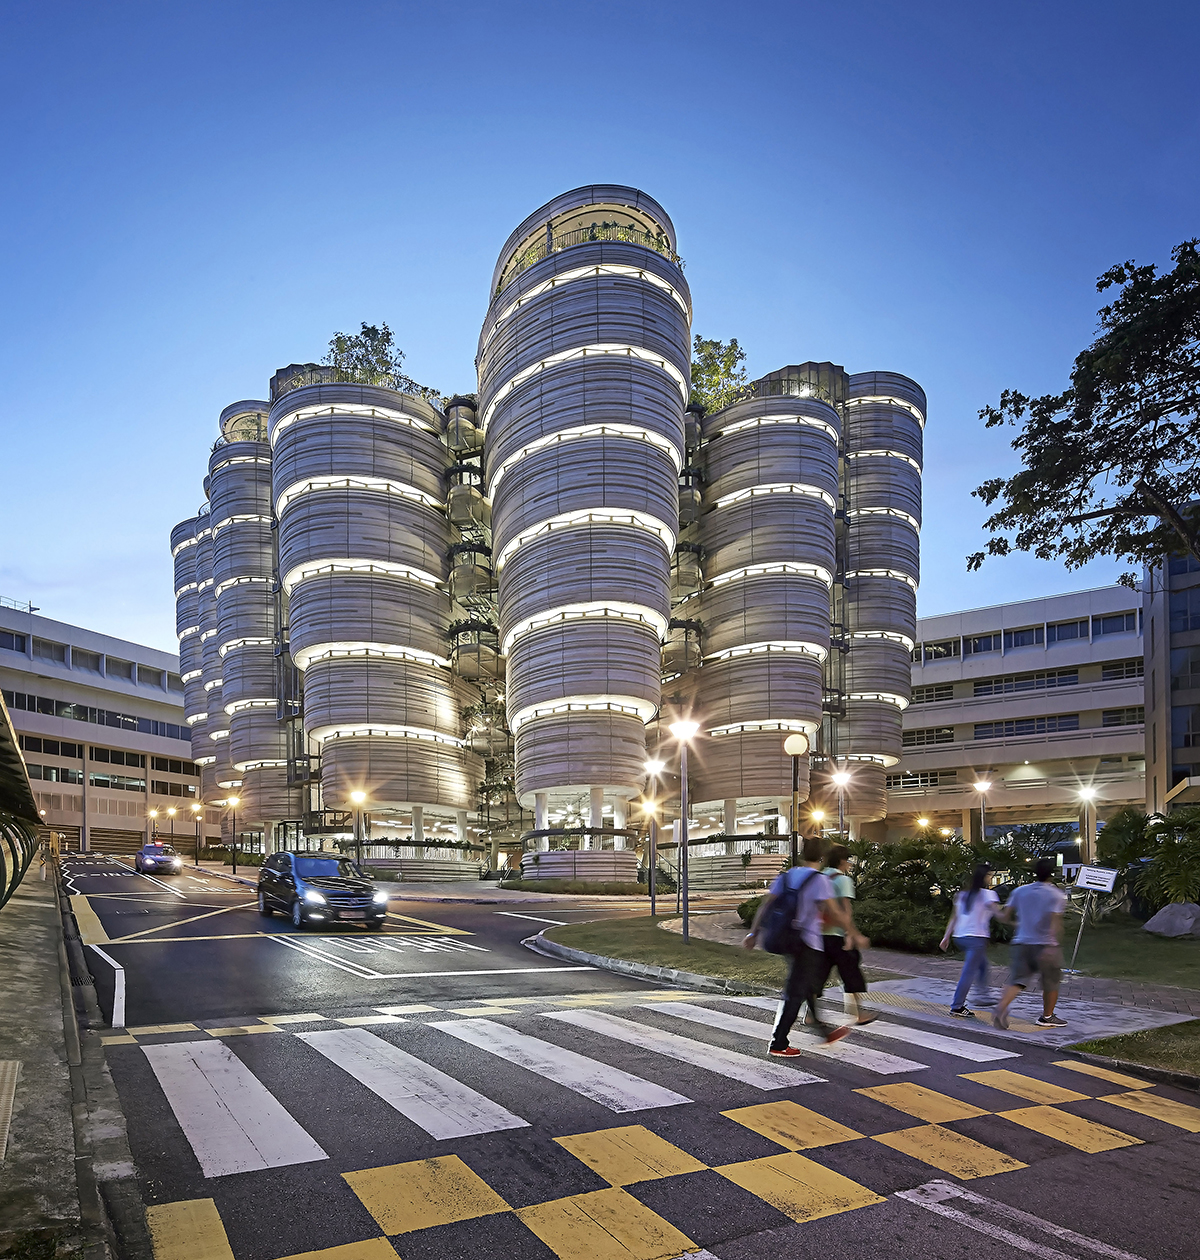 Ntu learning hub thomas heatherwick ssphere for U of m architecture